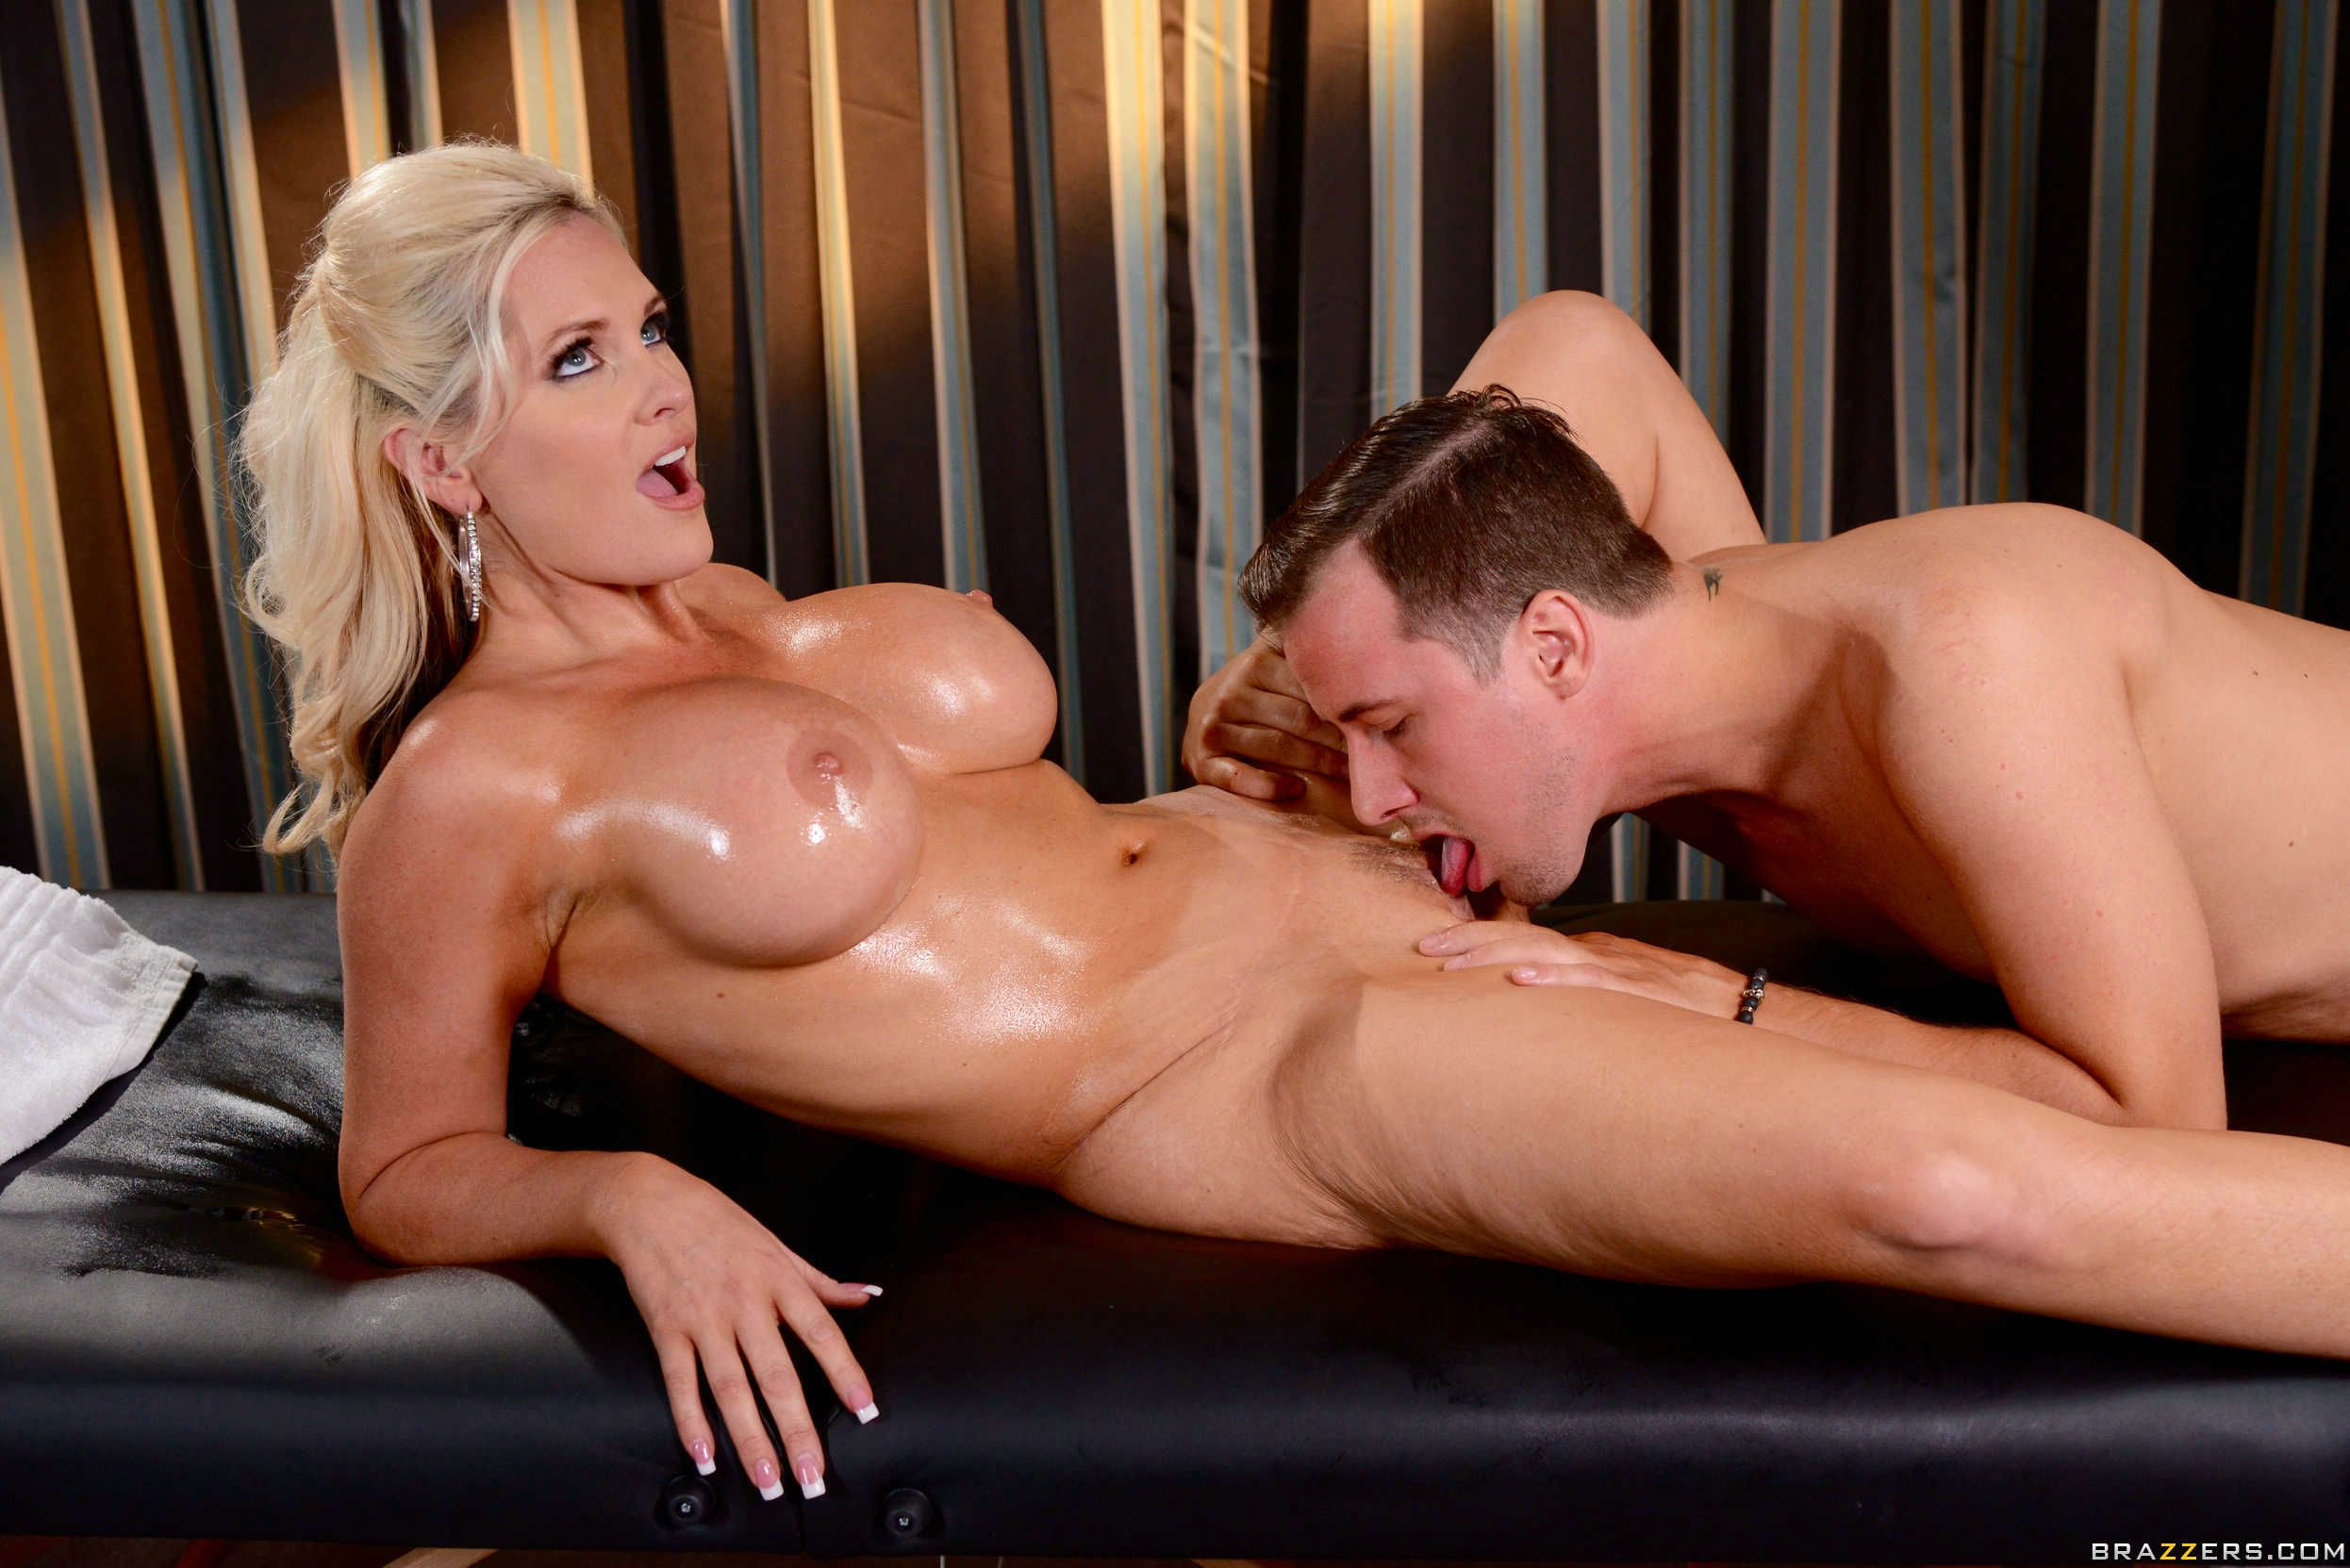 Alena croft in breathe in, stretched out